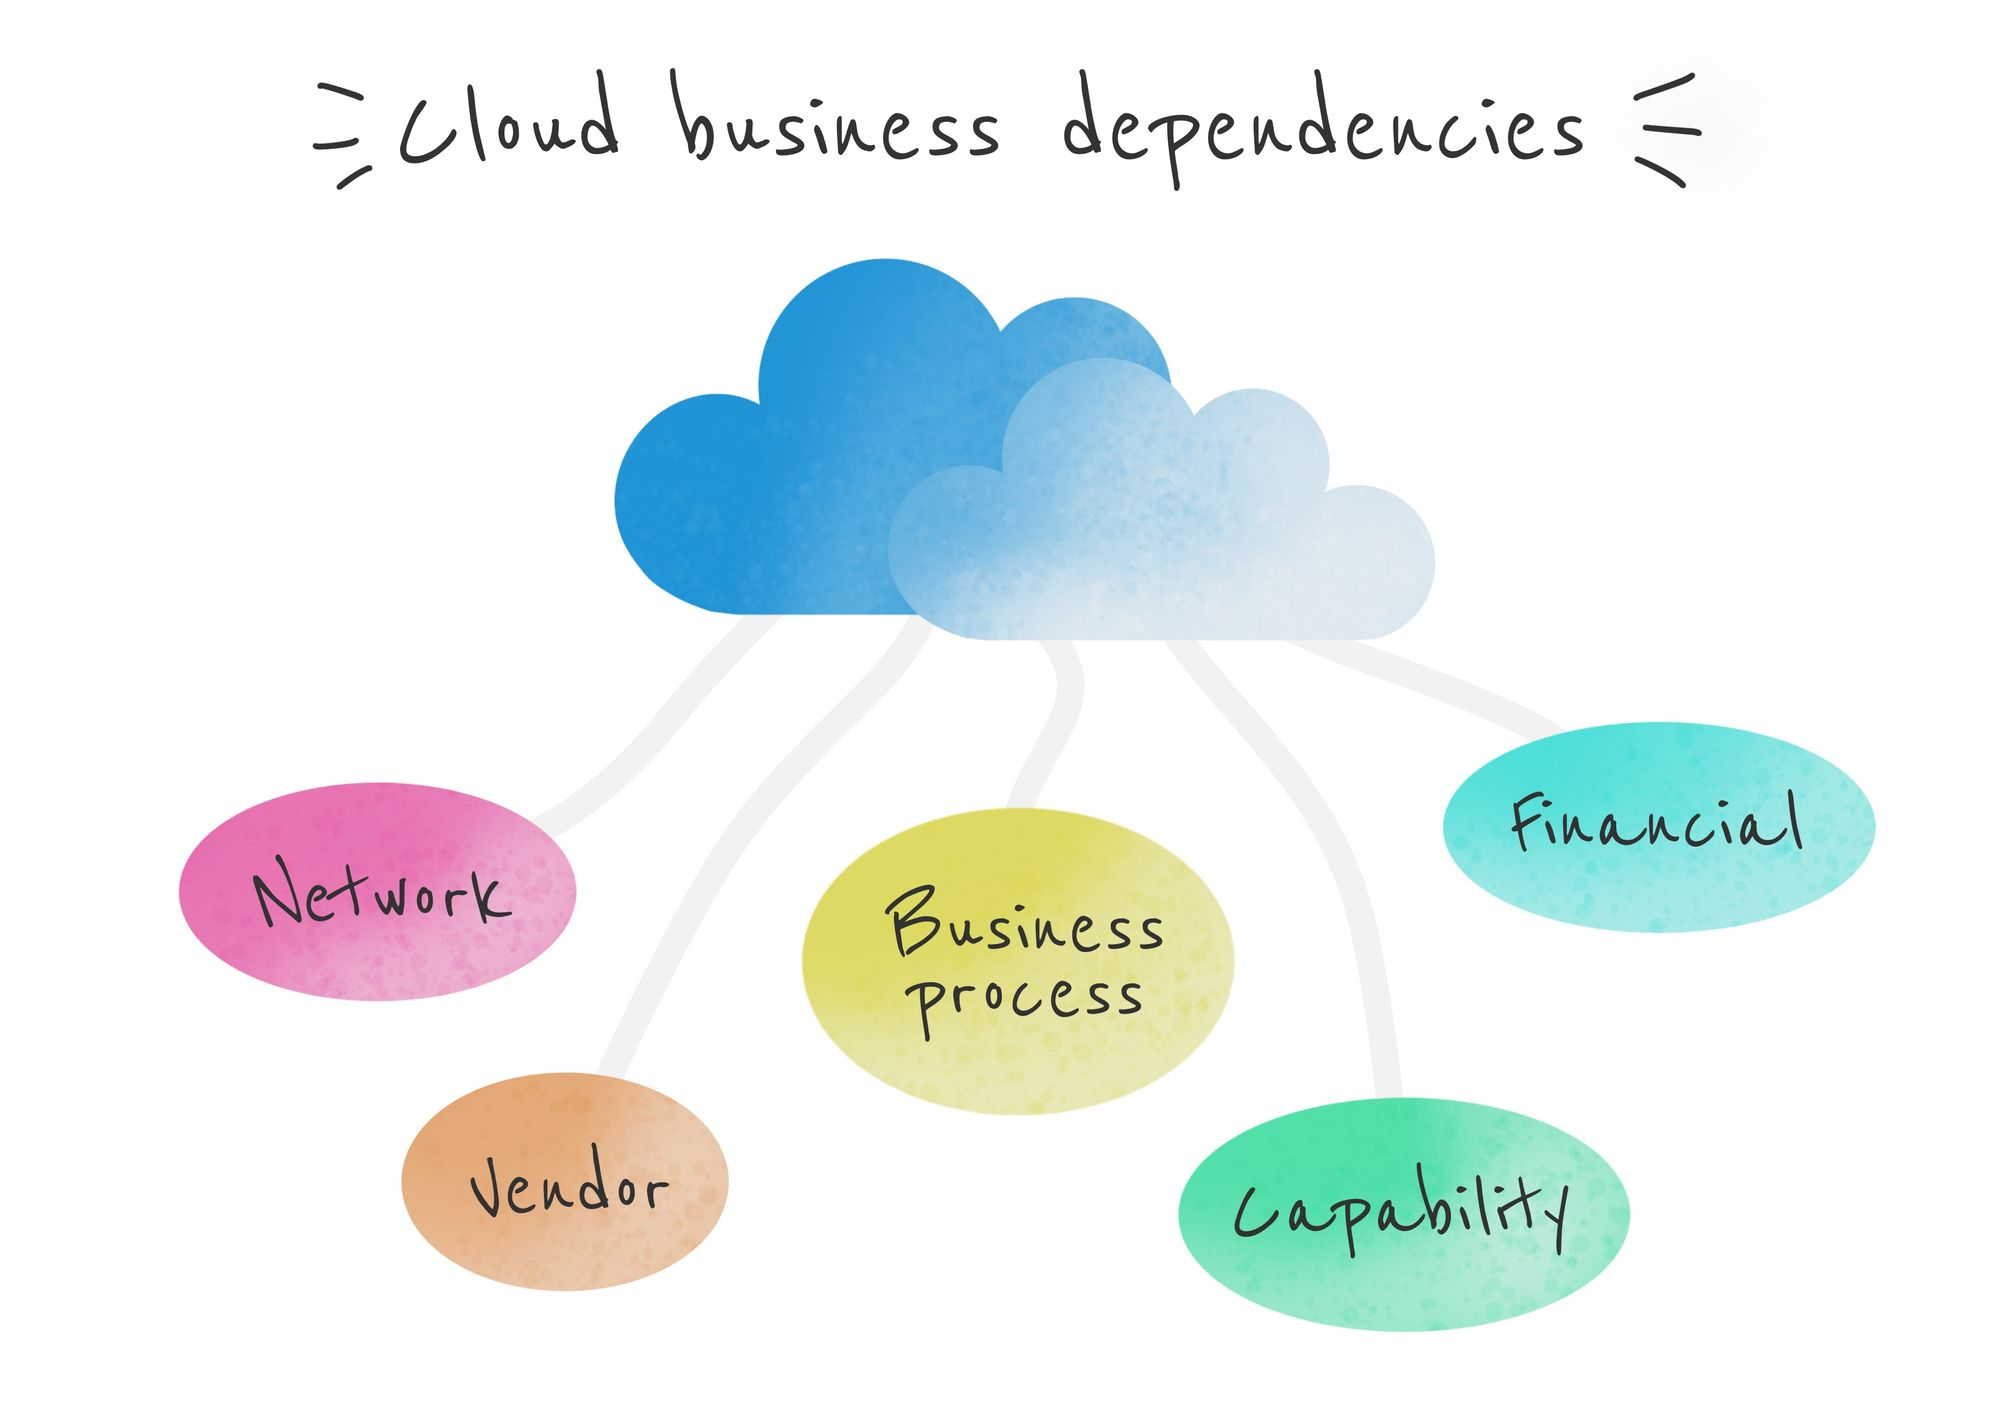 The types of dependencies that should be accounted for in Cloud technology business cases